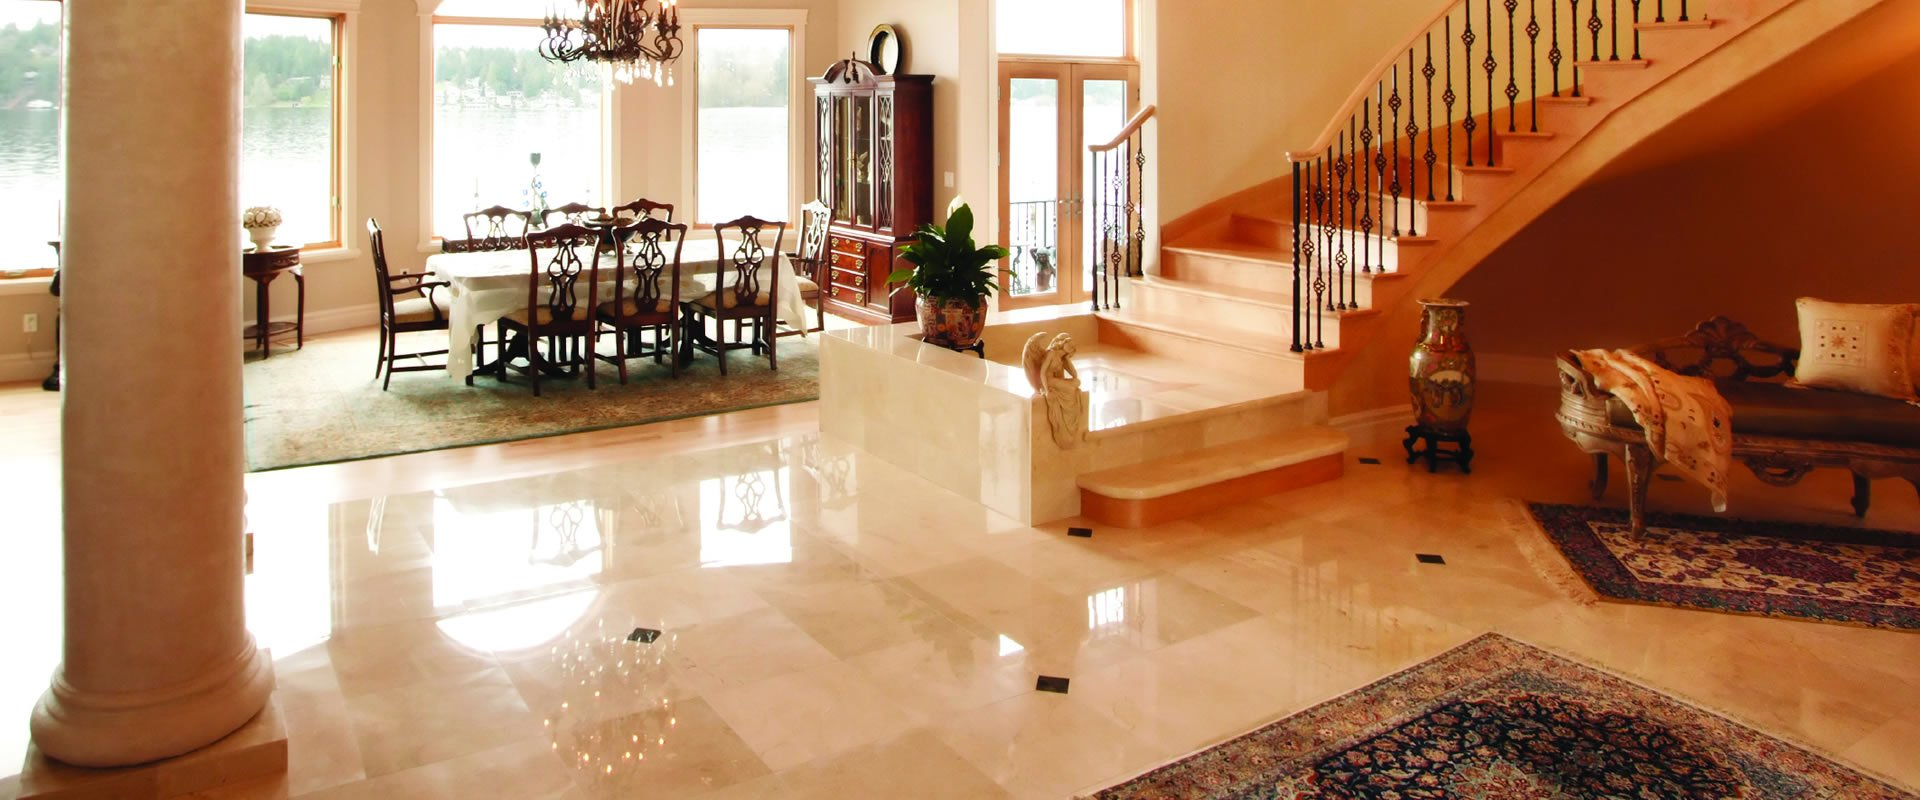 Houston Stone Care Tomball Tx Great American Carpet